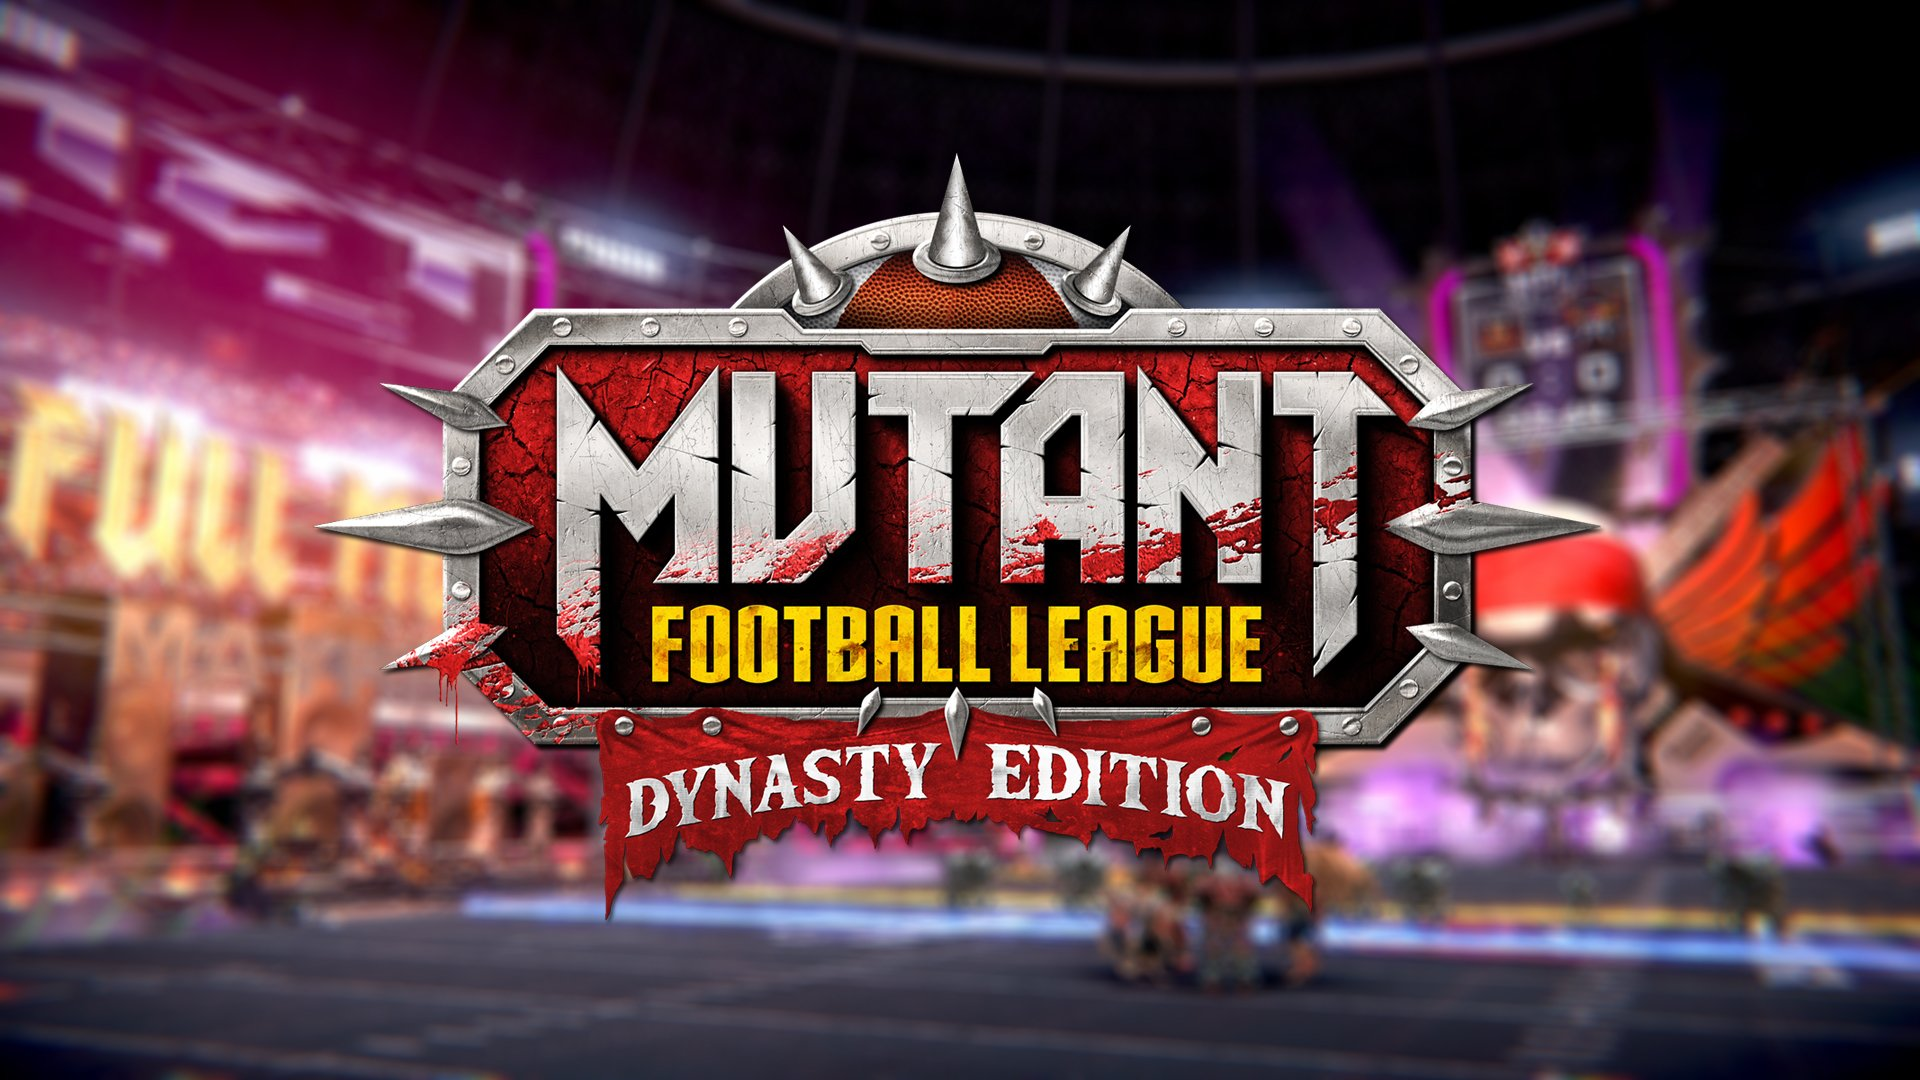 Mutant Football League Dynasty Edition Arriving On Consoles In